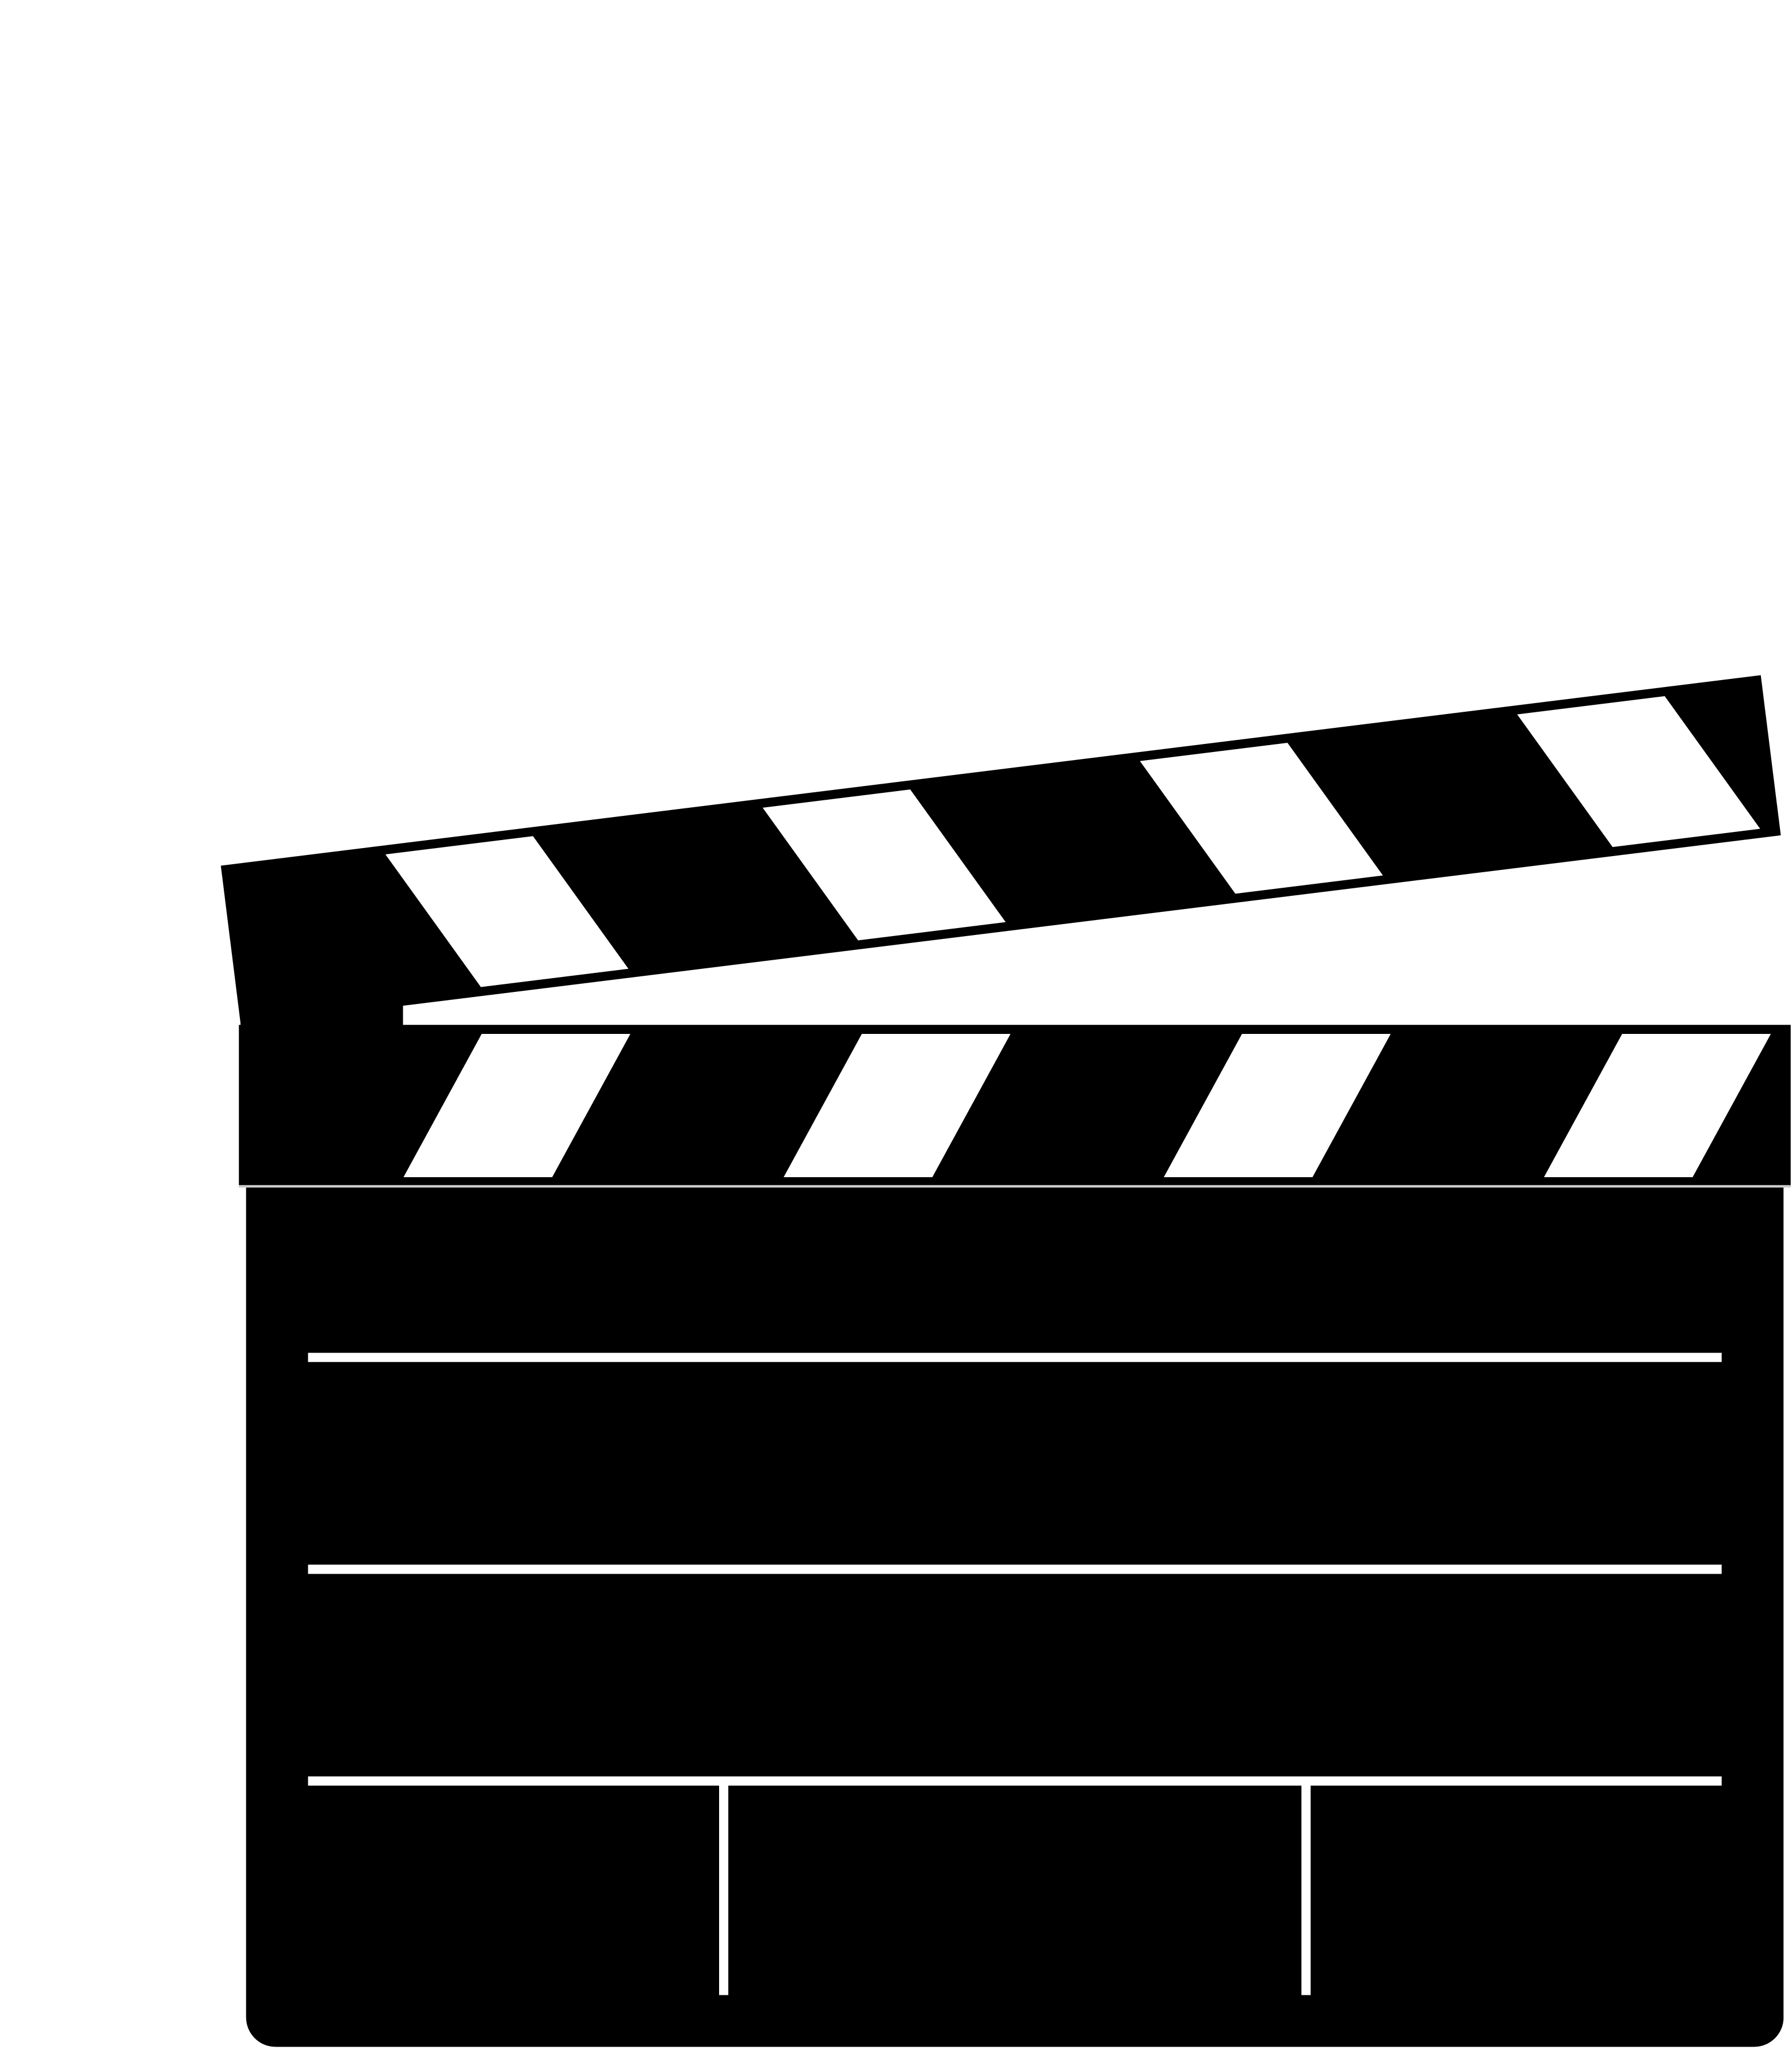 Clapperboard PNG - 4449